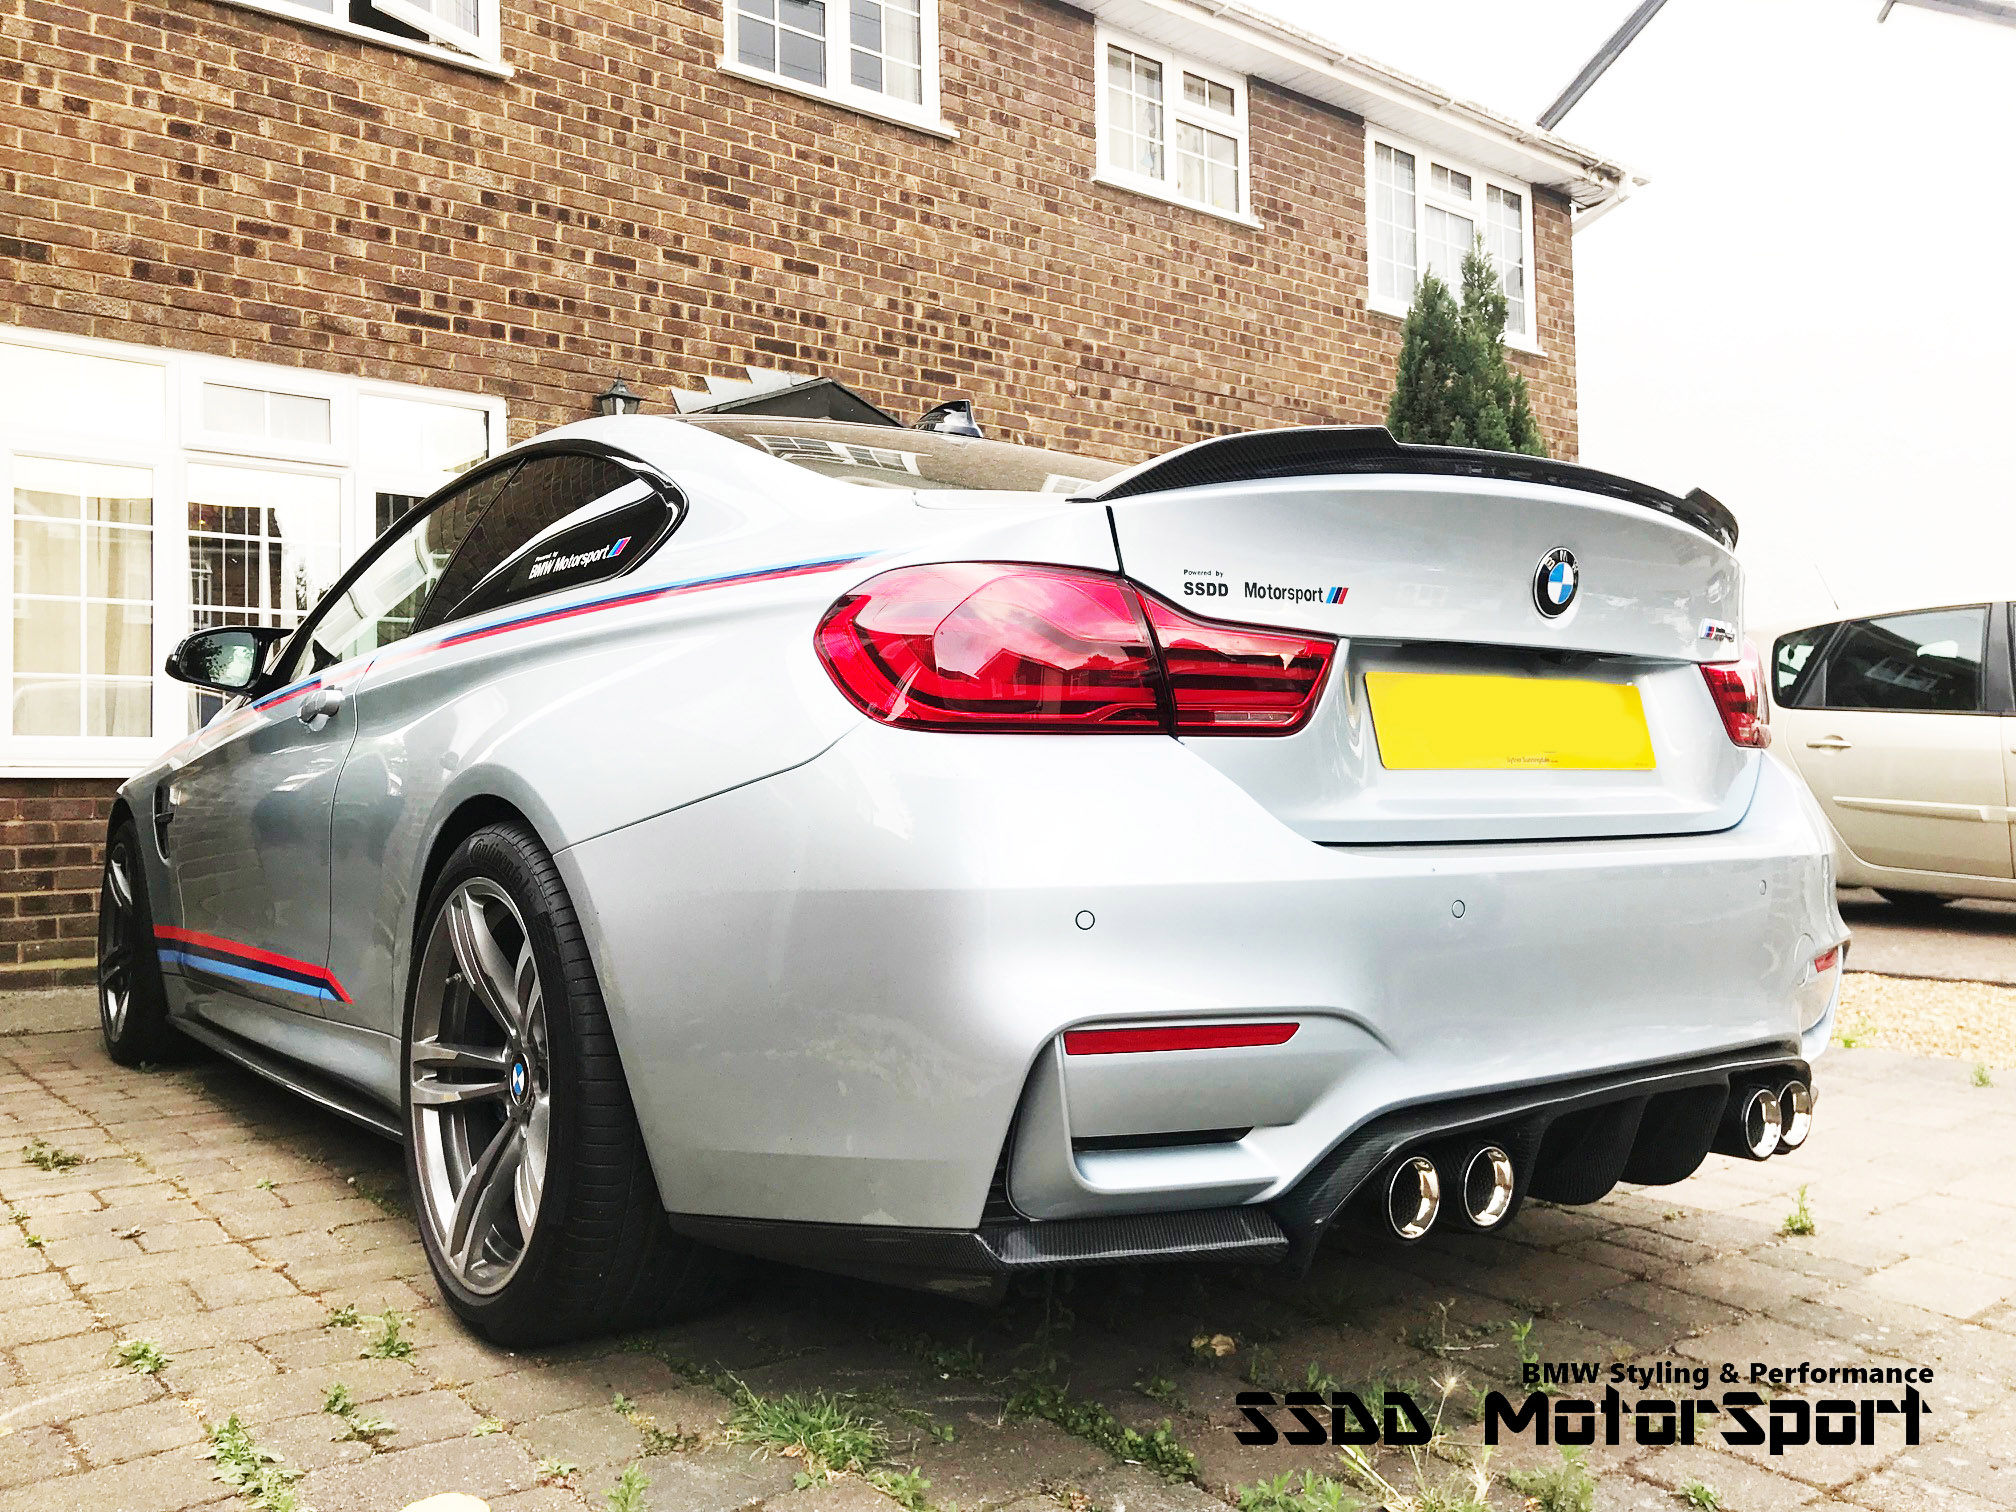 f82-m4-cs-boot-trunk-spoiler-1.jpg